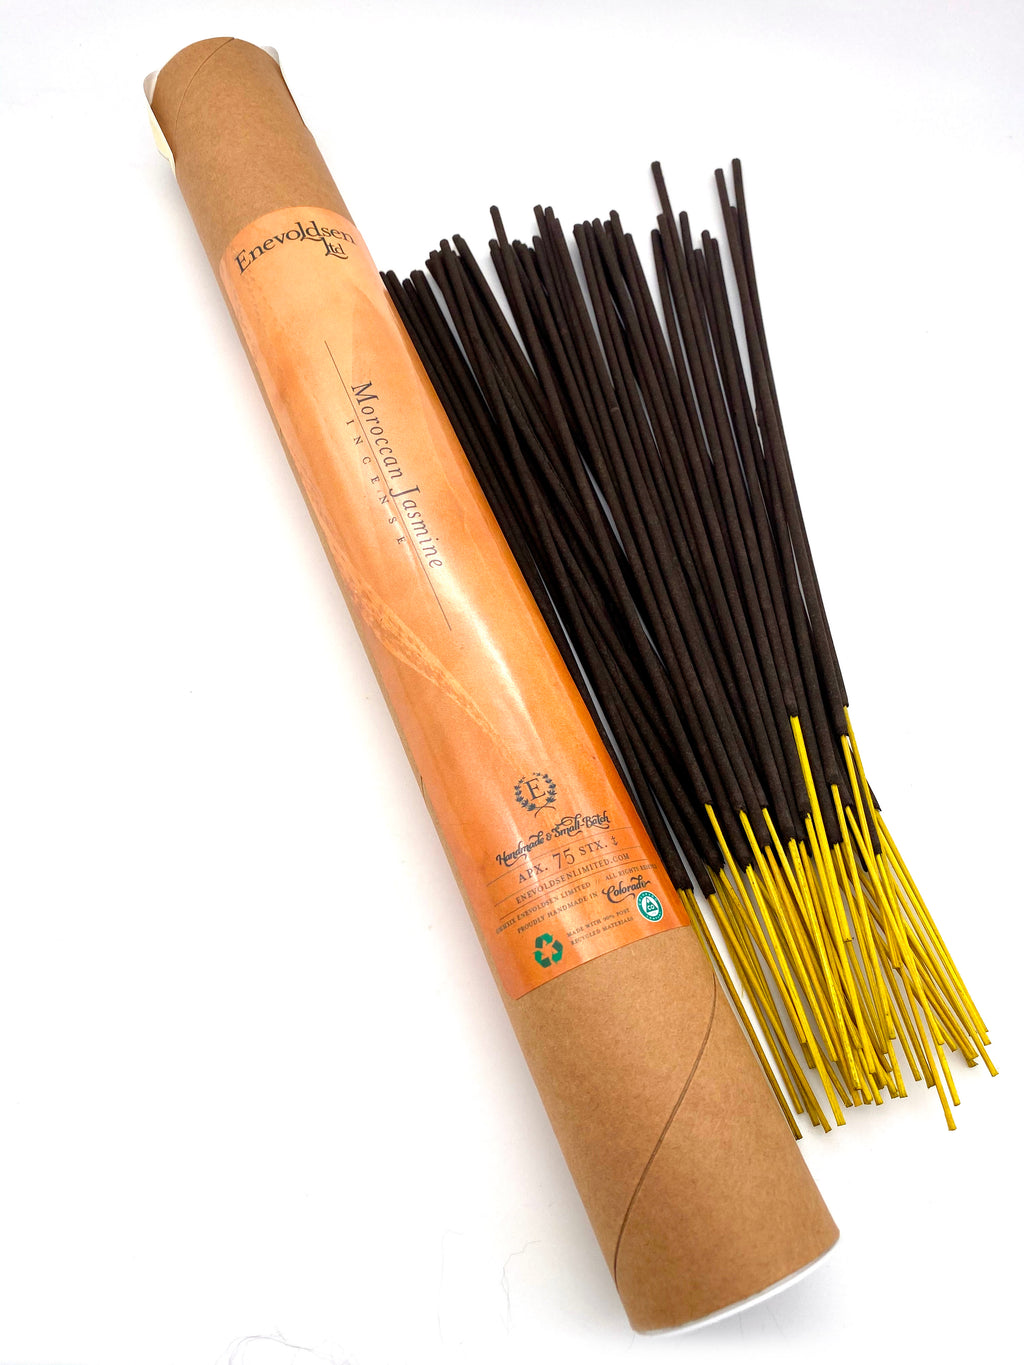 Moroccan Jasmine Handmade Charcoal Incense- 75+ Sticks - Enevoldsen Limited